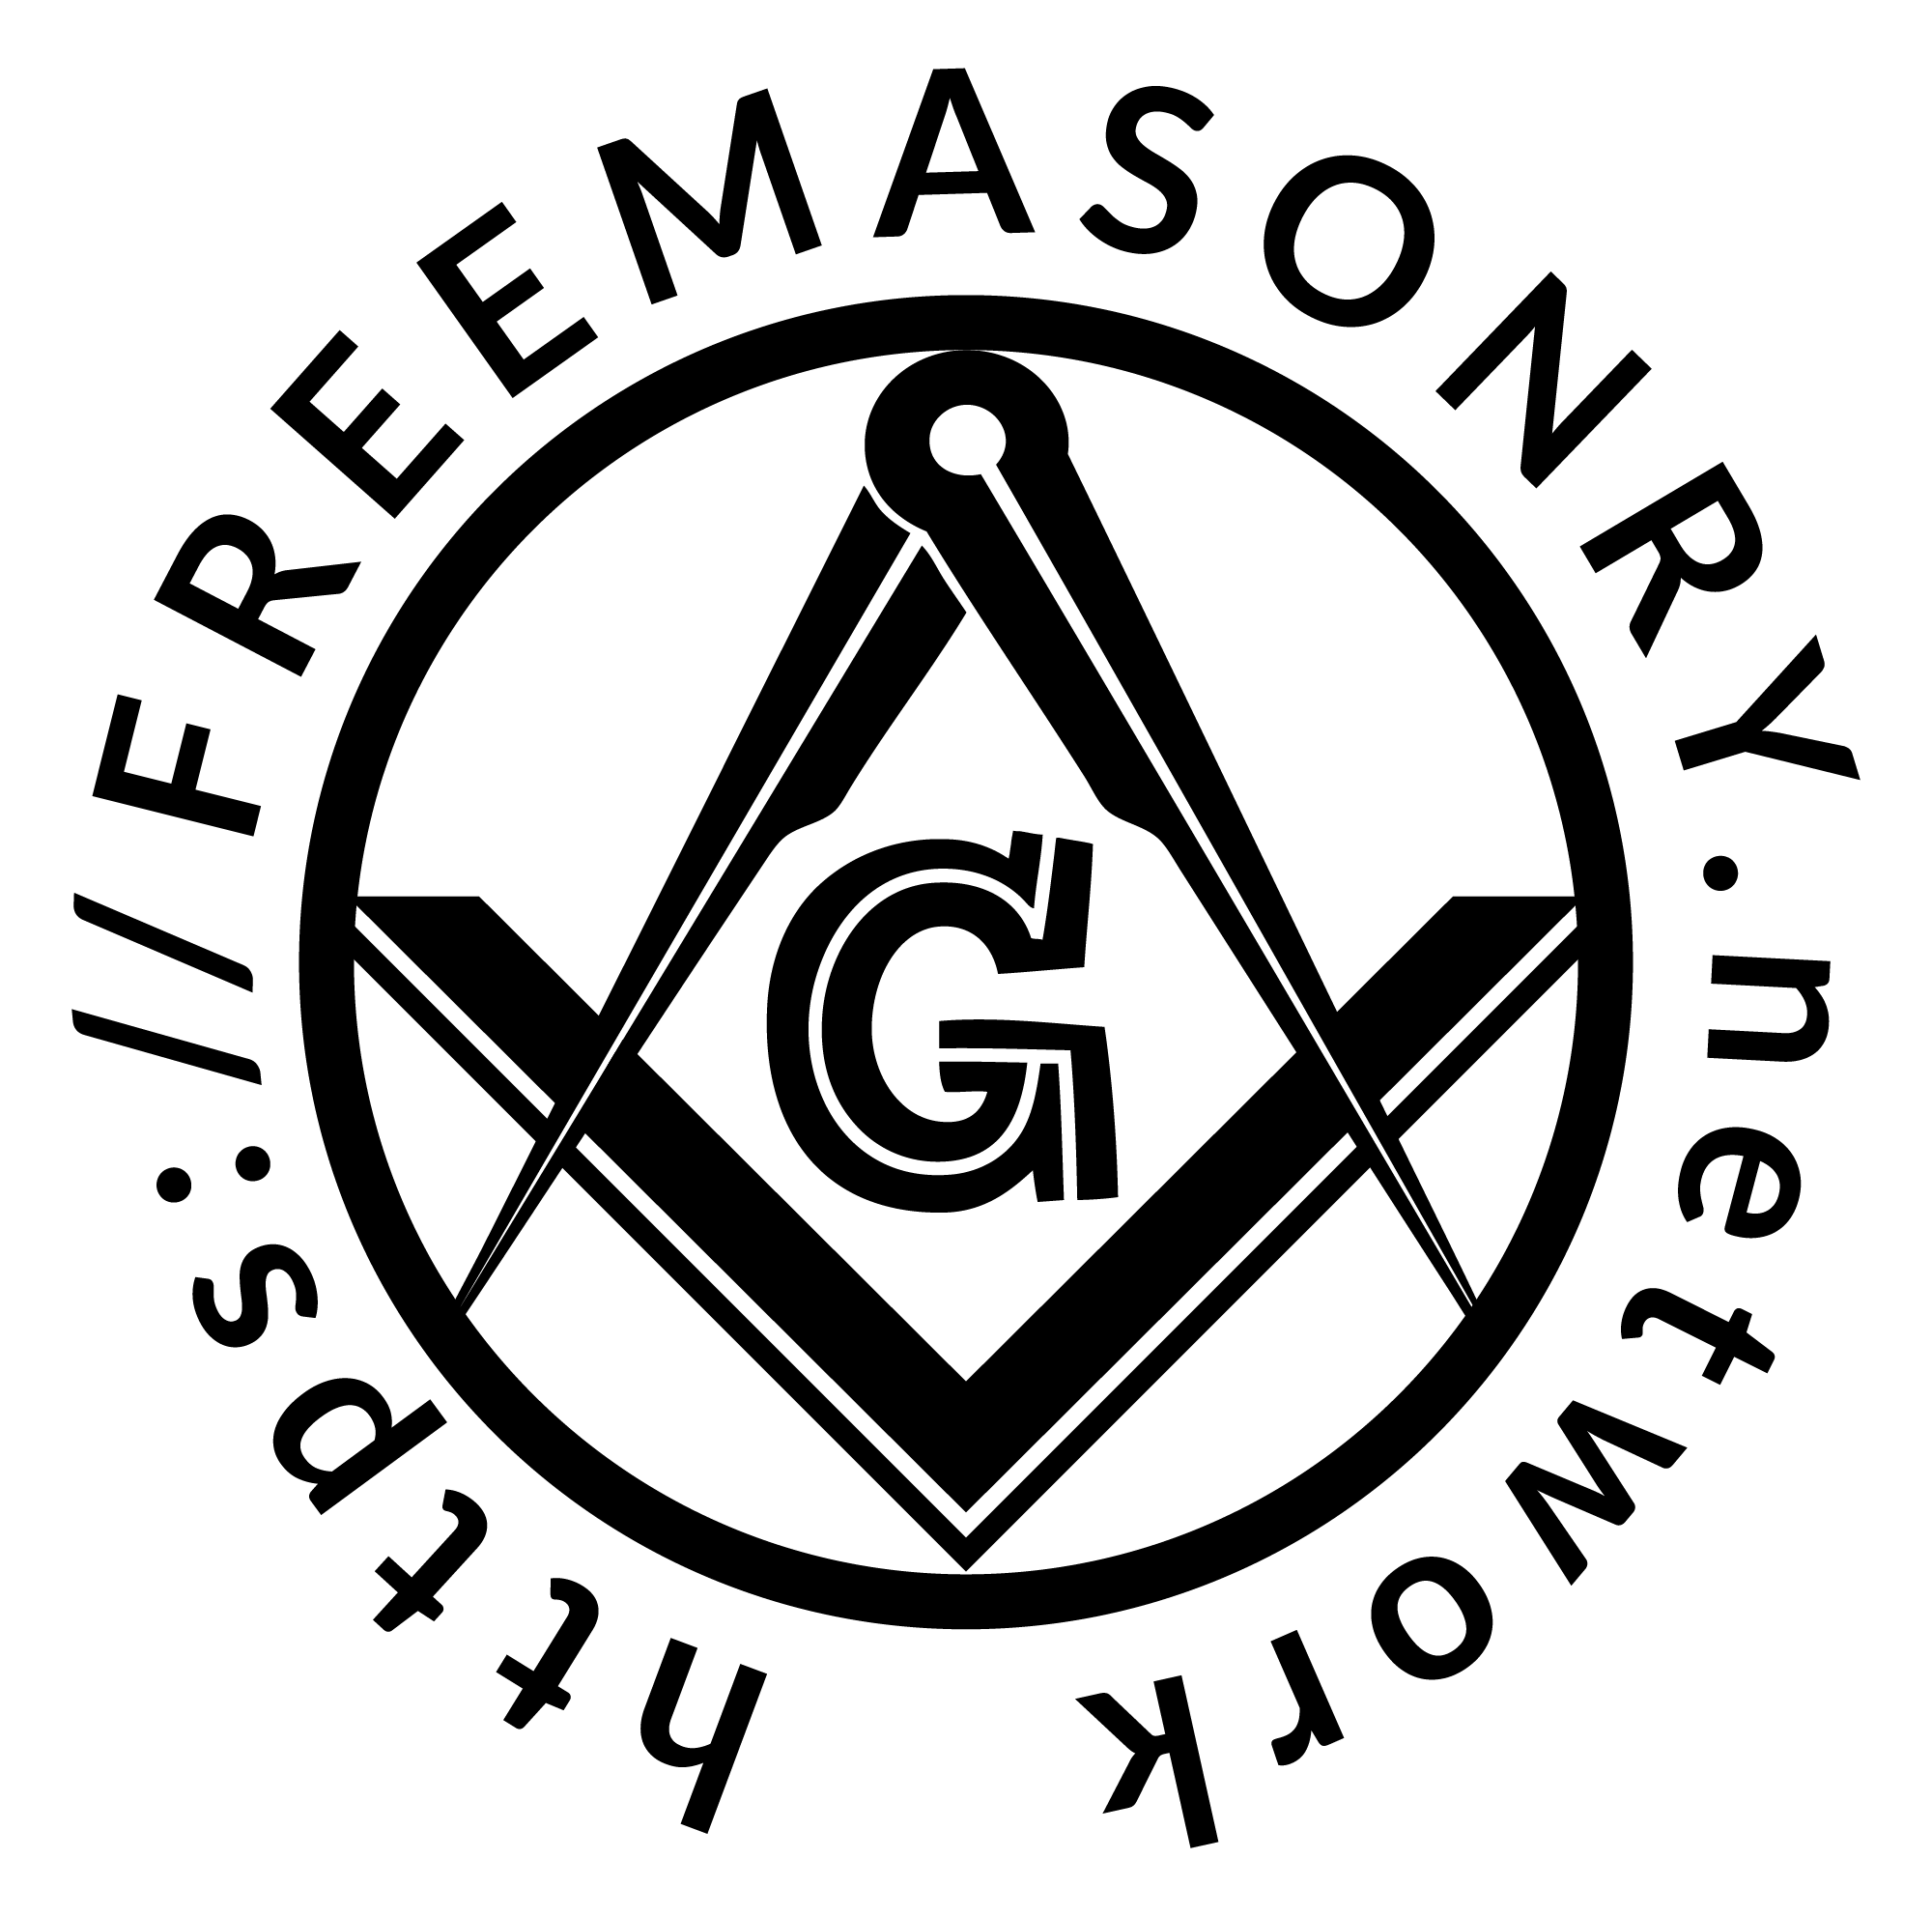 Elkin Masonic Lodge 454 and history of philanthropy older than North Carolina